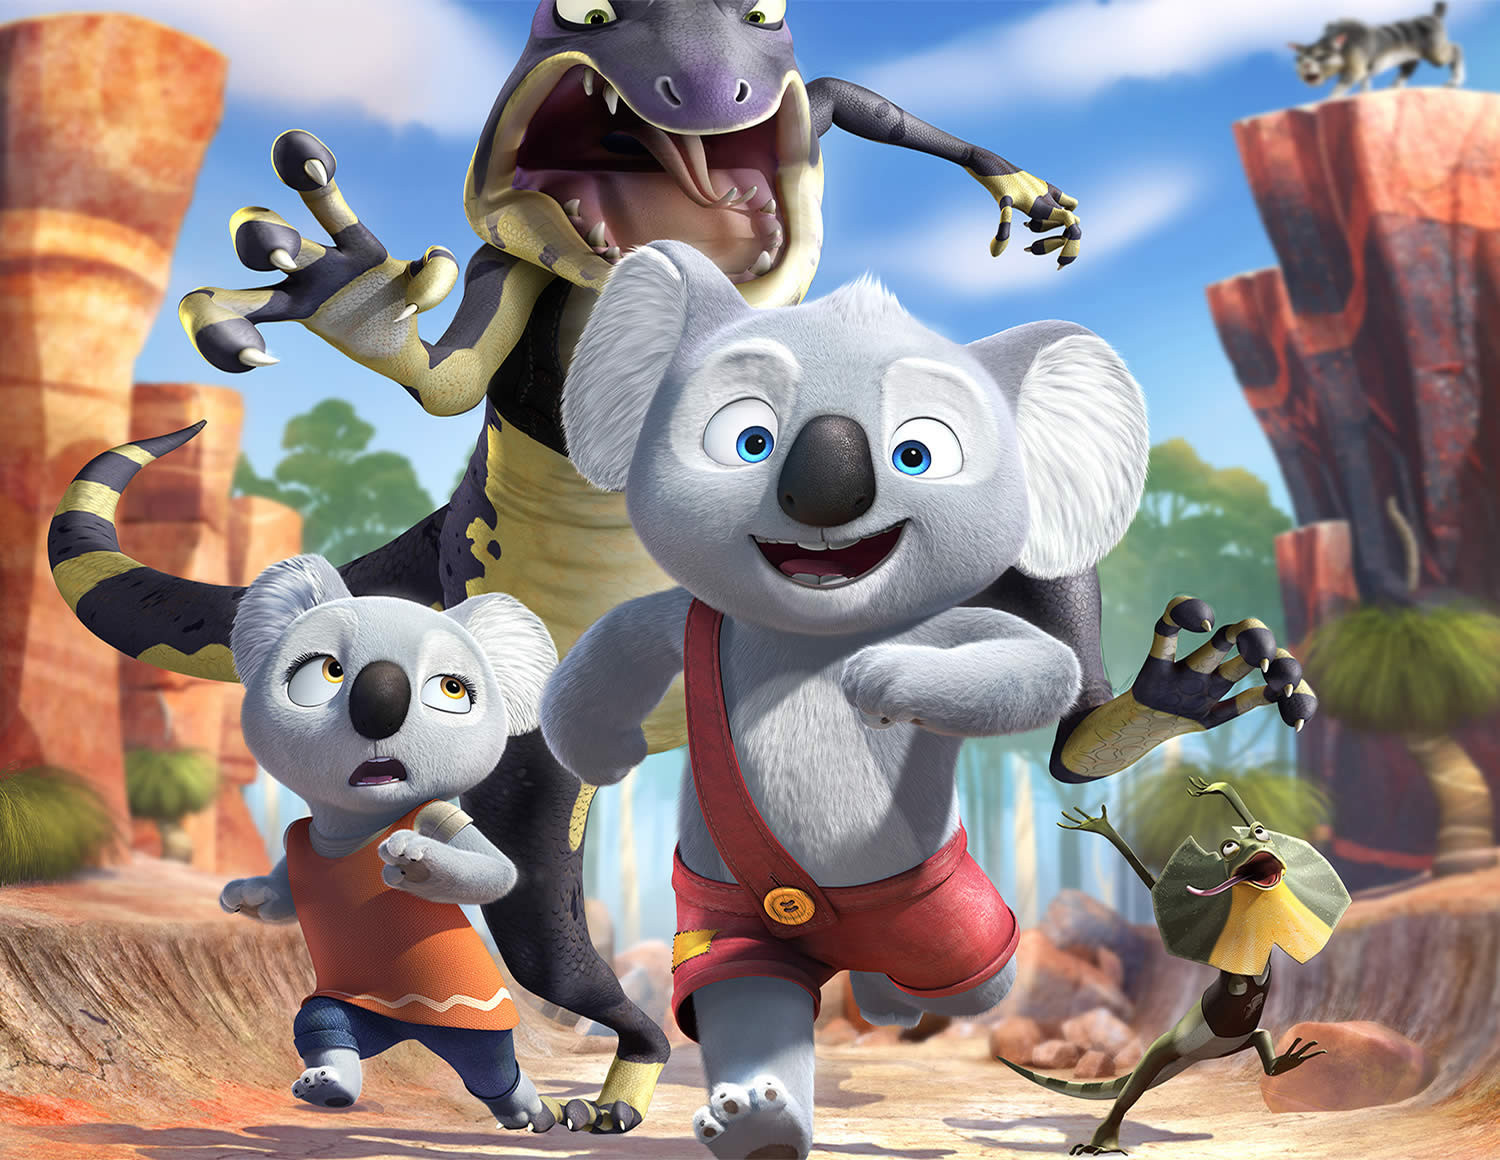 blinky bill movie, koalas on the run